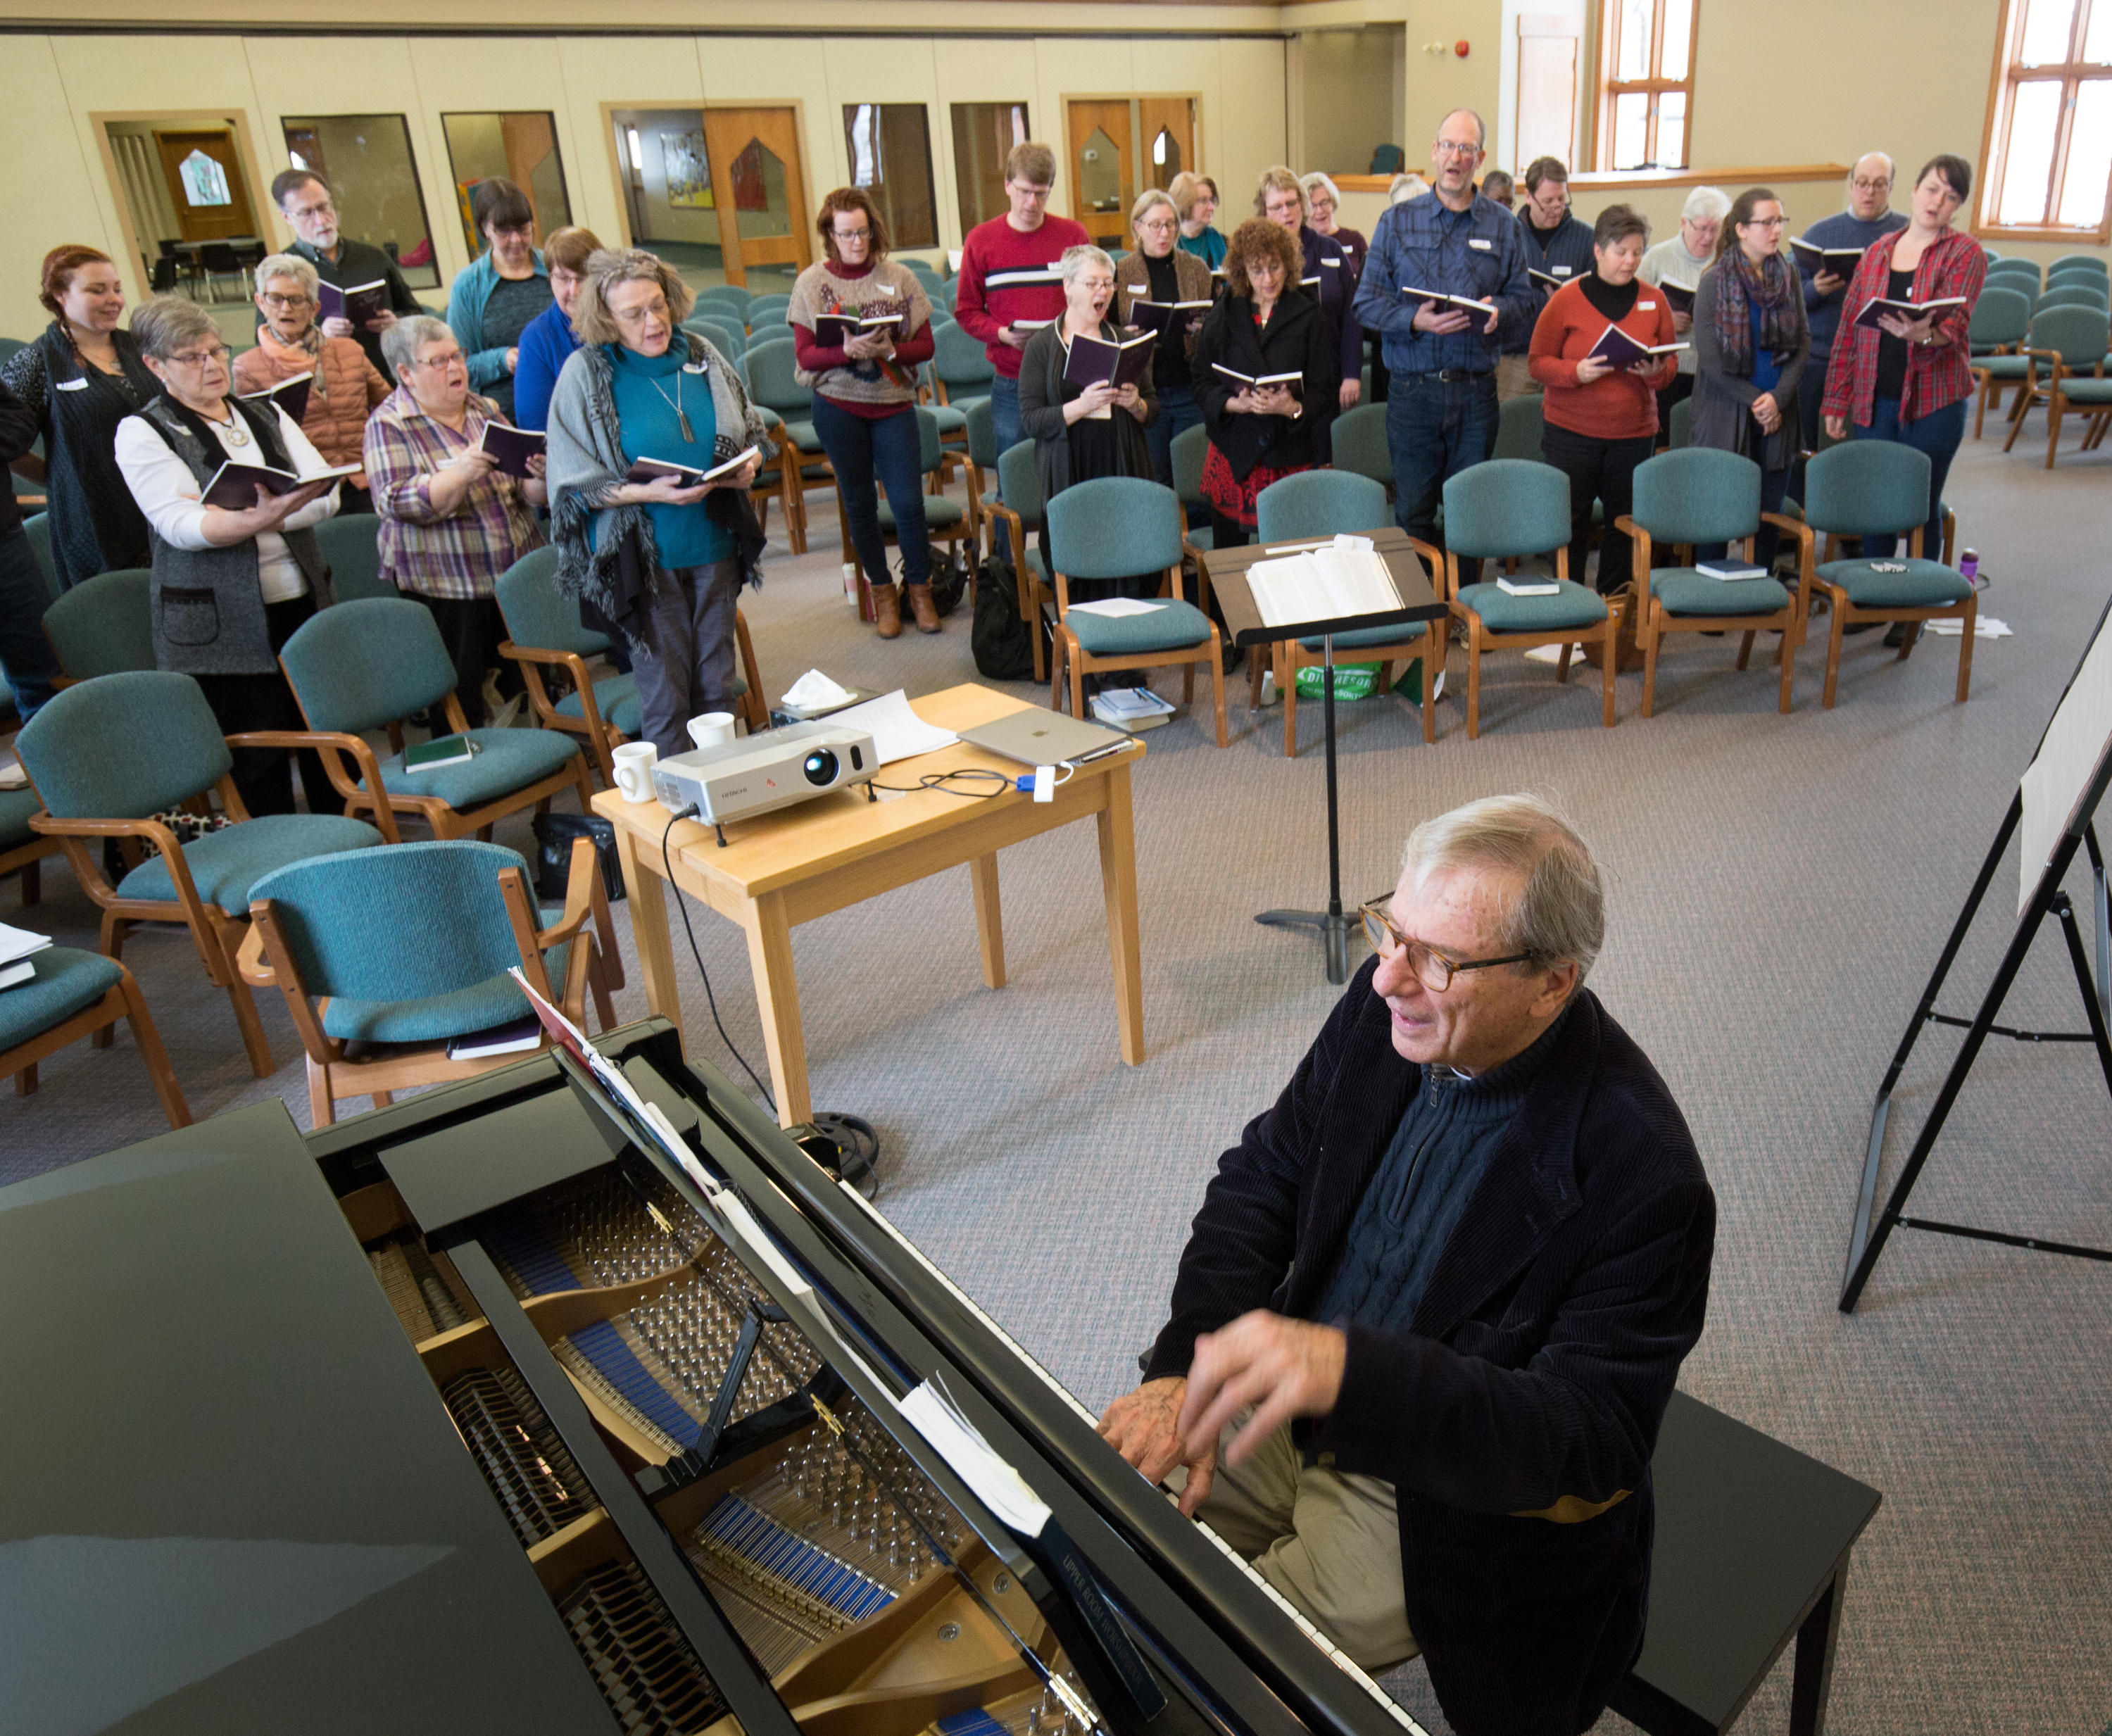 Don Saliers sits at the piano leading participants in singing from hymn books.